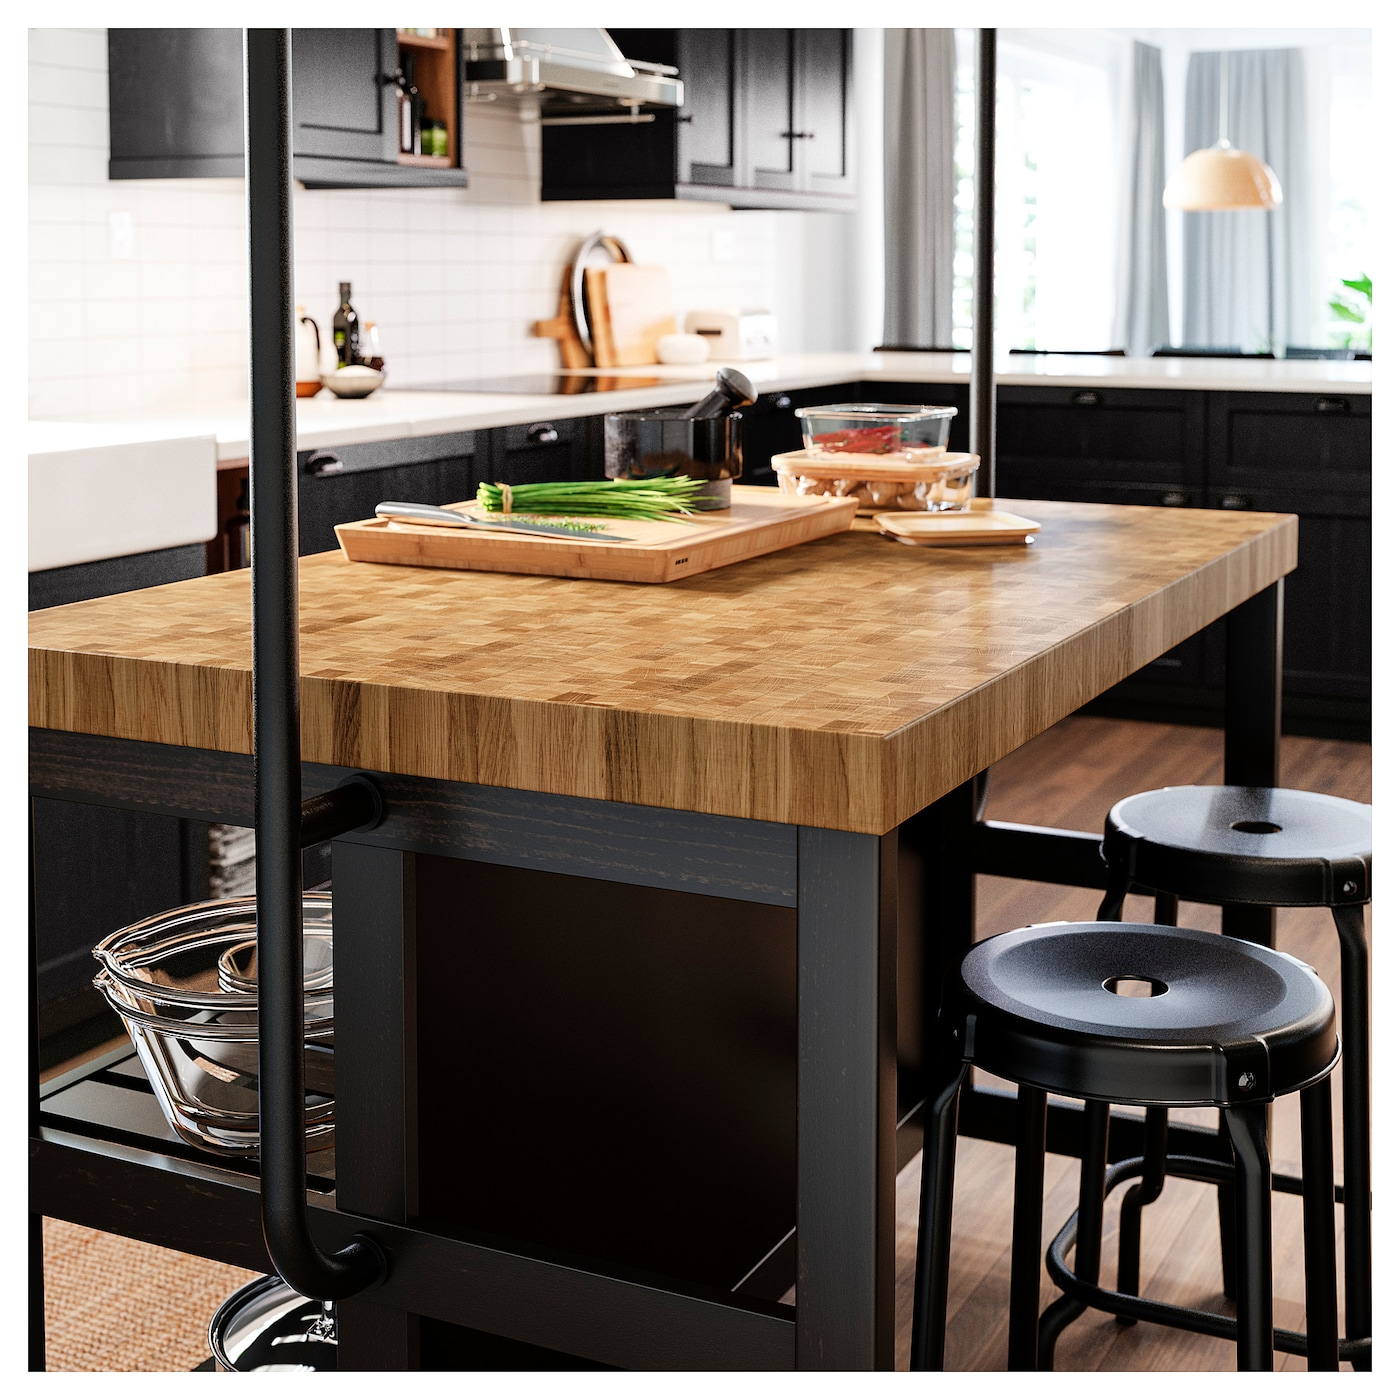 Table Centrale Cuisine: VADHOLMA Kitchen Island